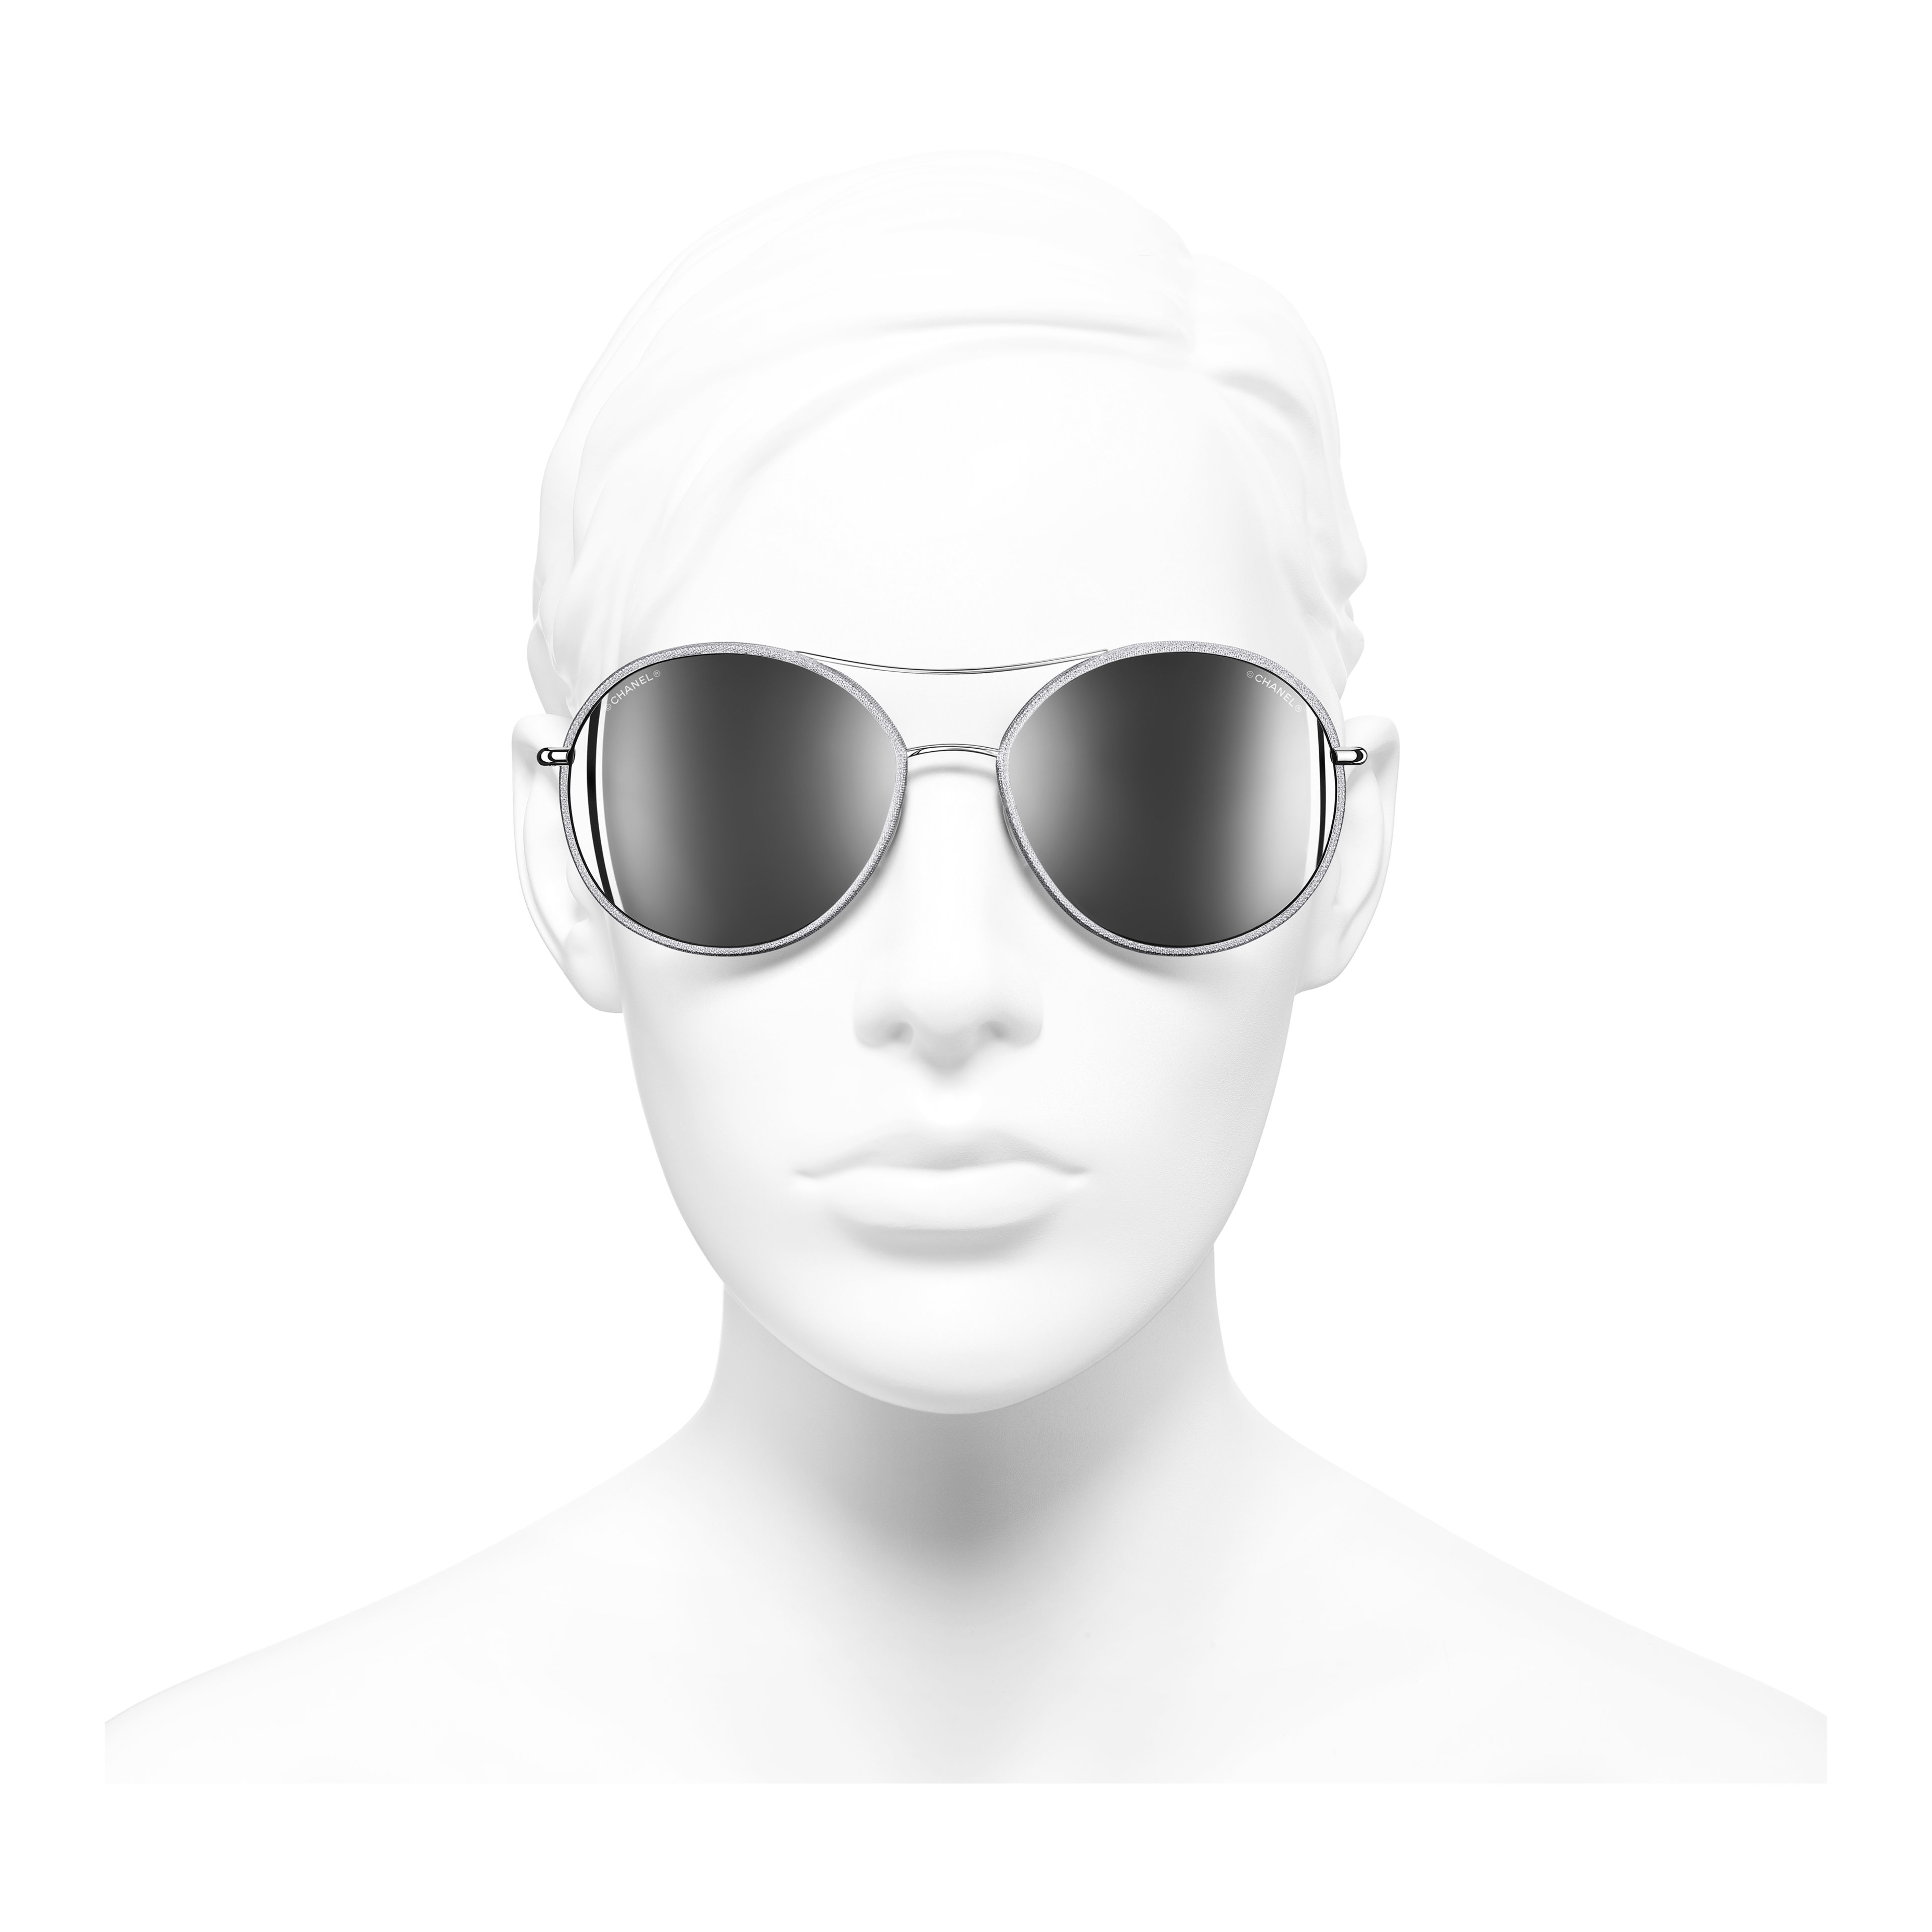 Pilot Sunglasses Metal & Polyester Silver -                                                                     view 2 - see full sized version